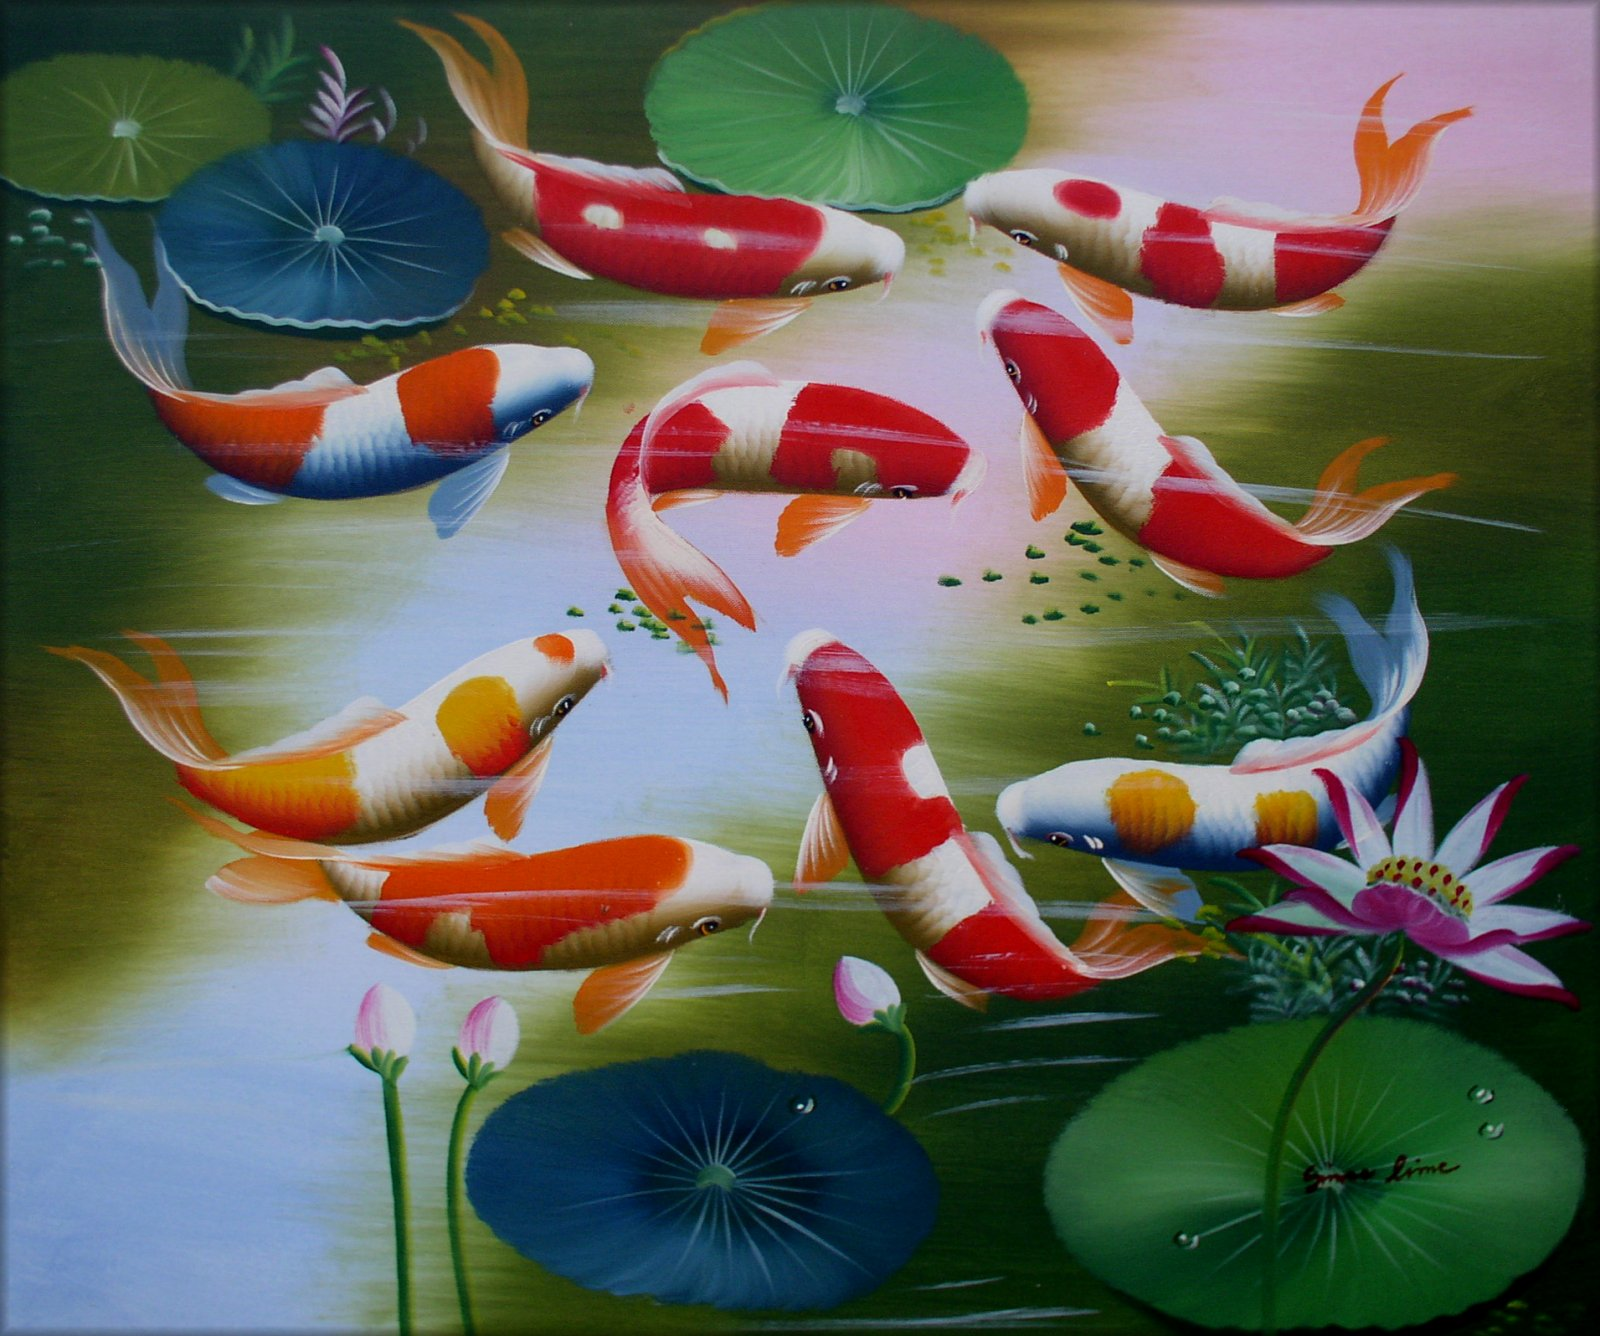 Framed koi carp pond hand painted oil painting 20x24in for Koi carp pond depth